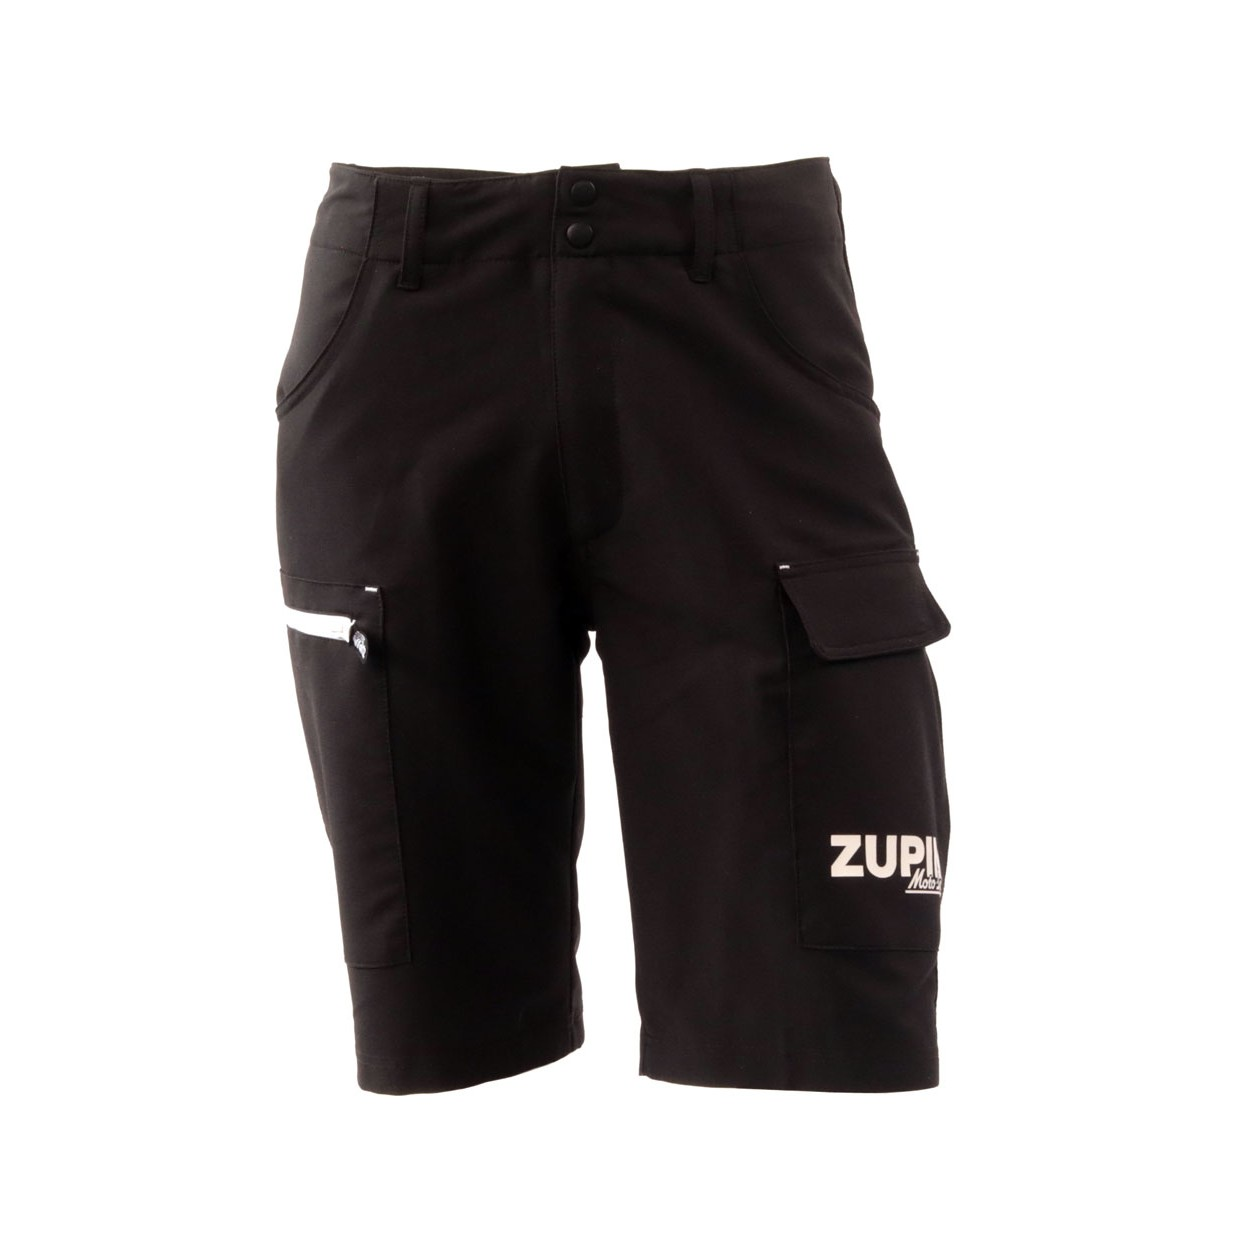 Zupin Mechaniker Short schwarz